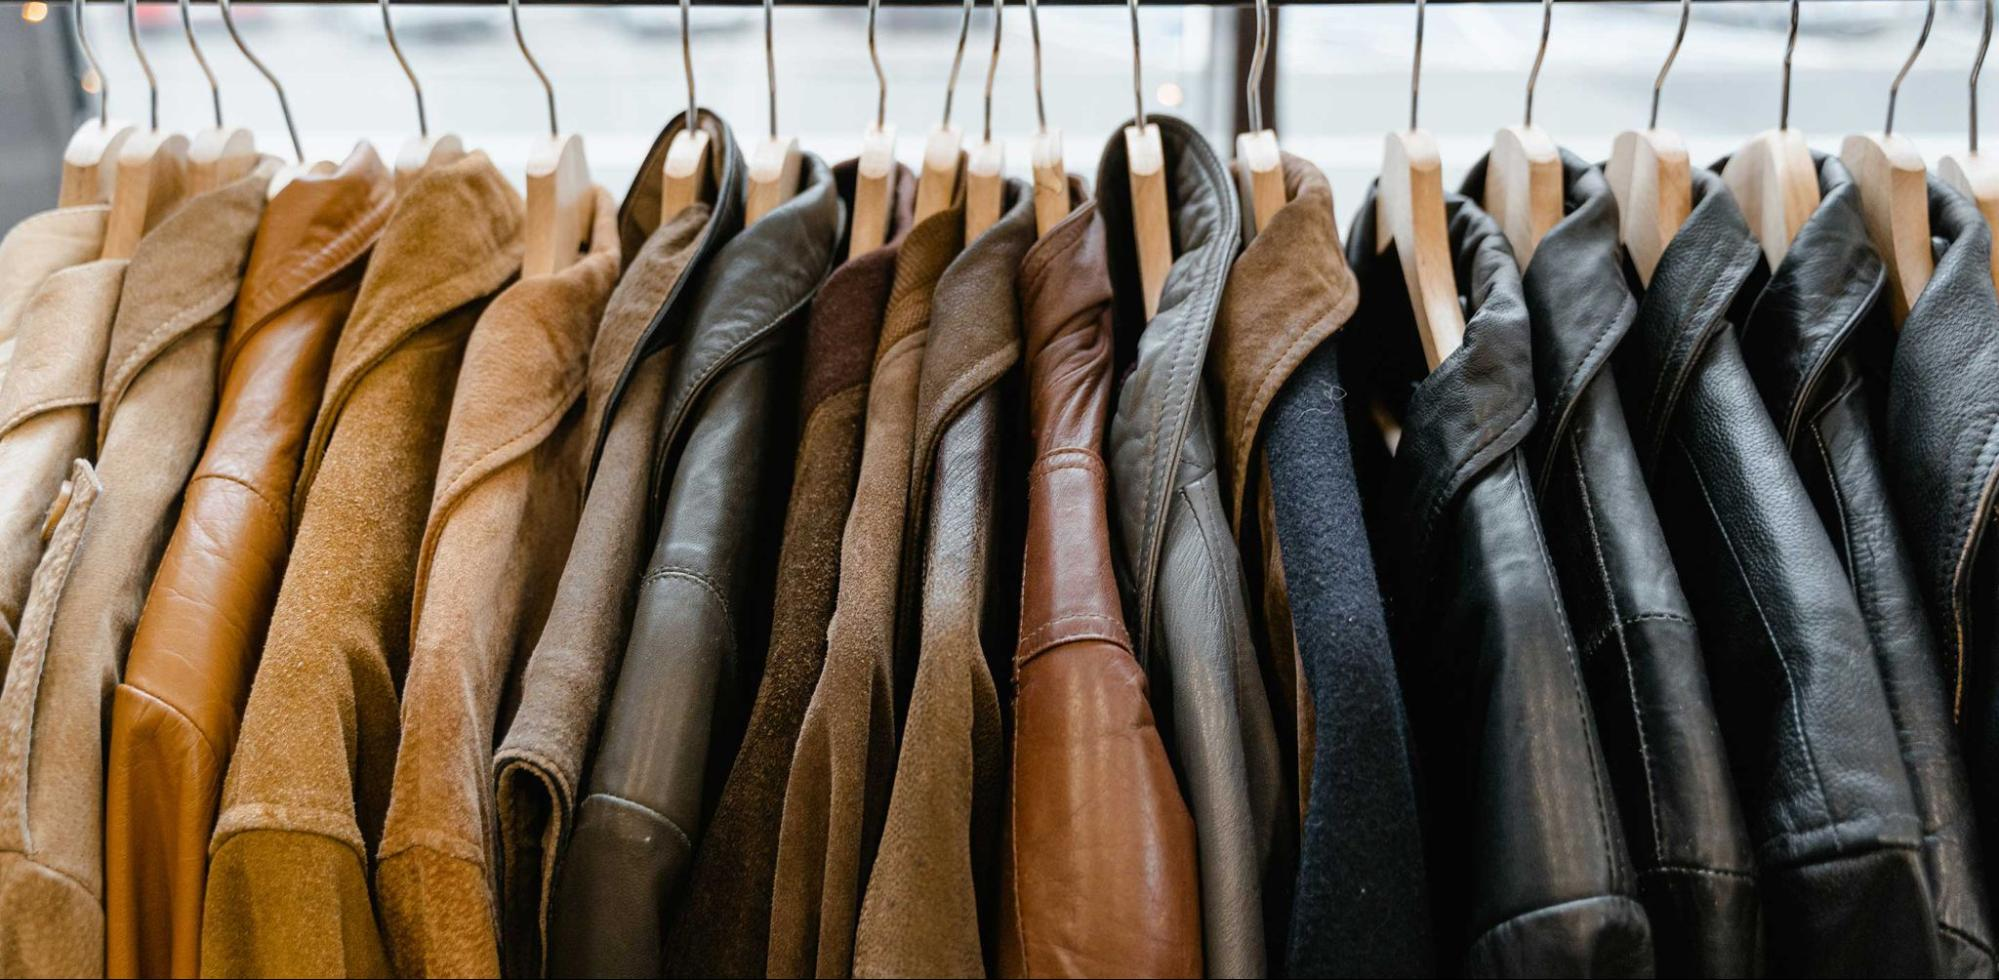 Black Or Brown Leather Jacket: What's Better for You?